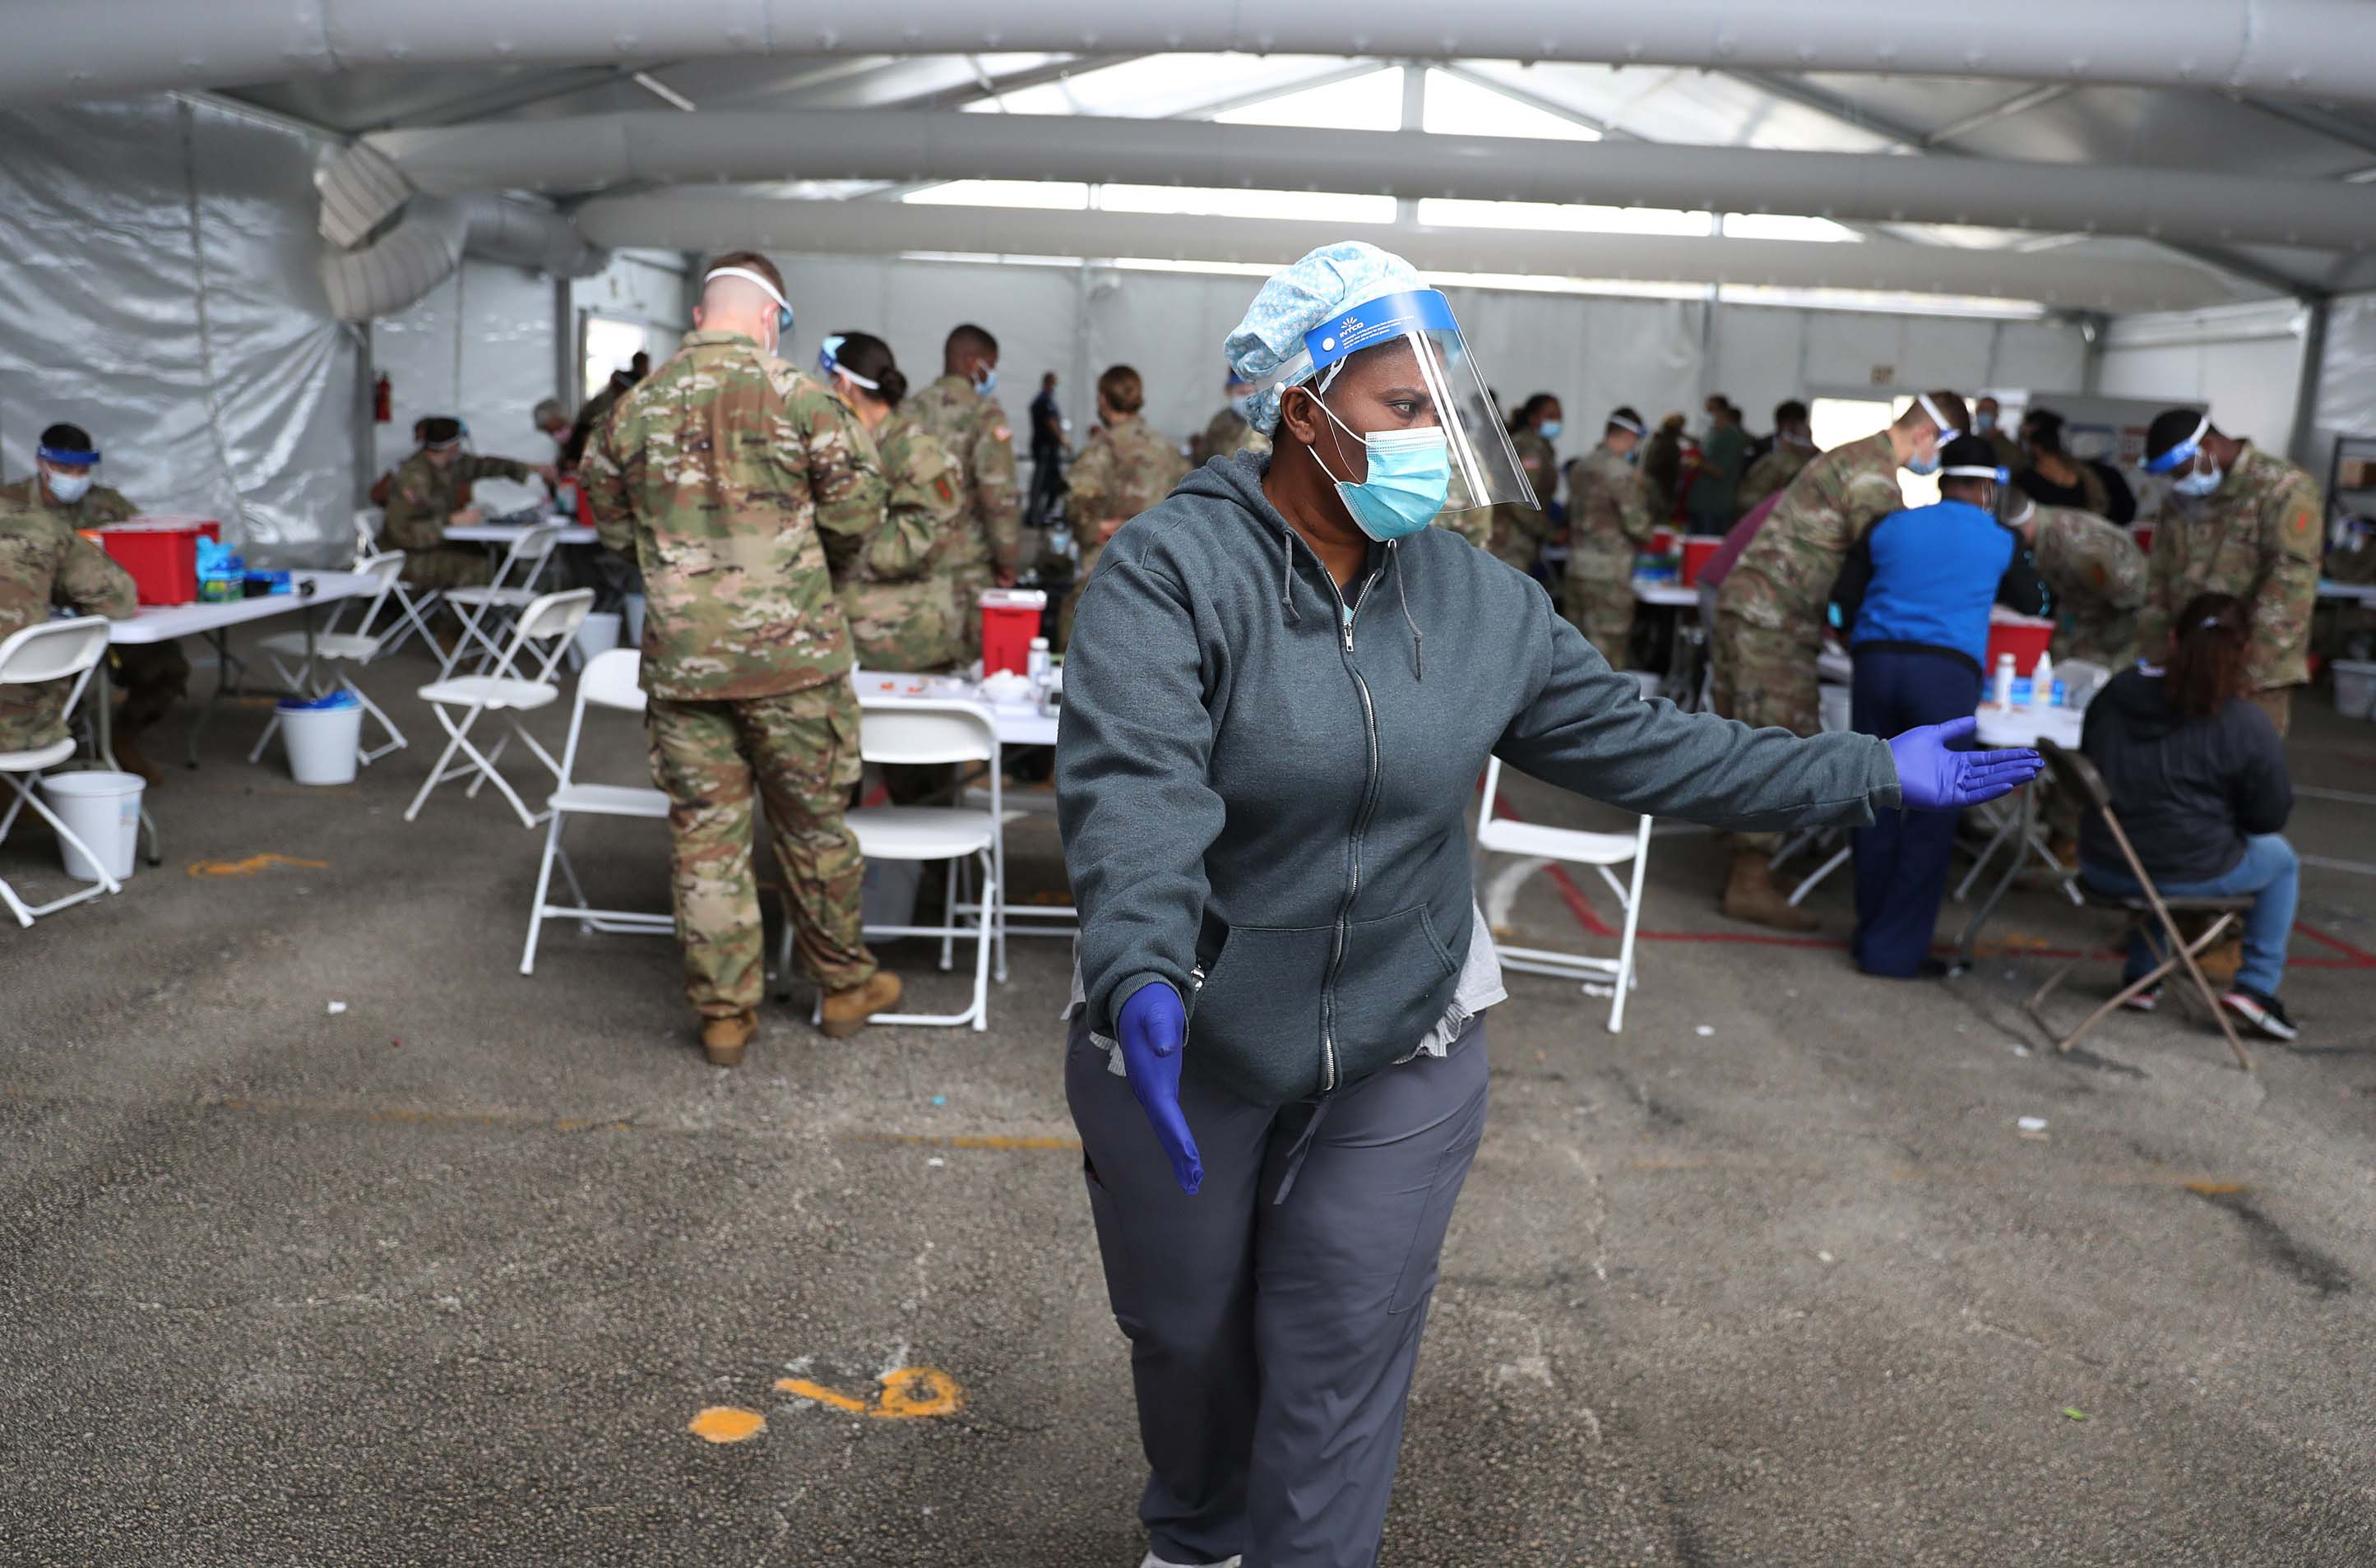 A health care worker directs people at a vaccination site in North Miami, Florida, on March 10.